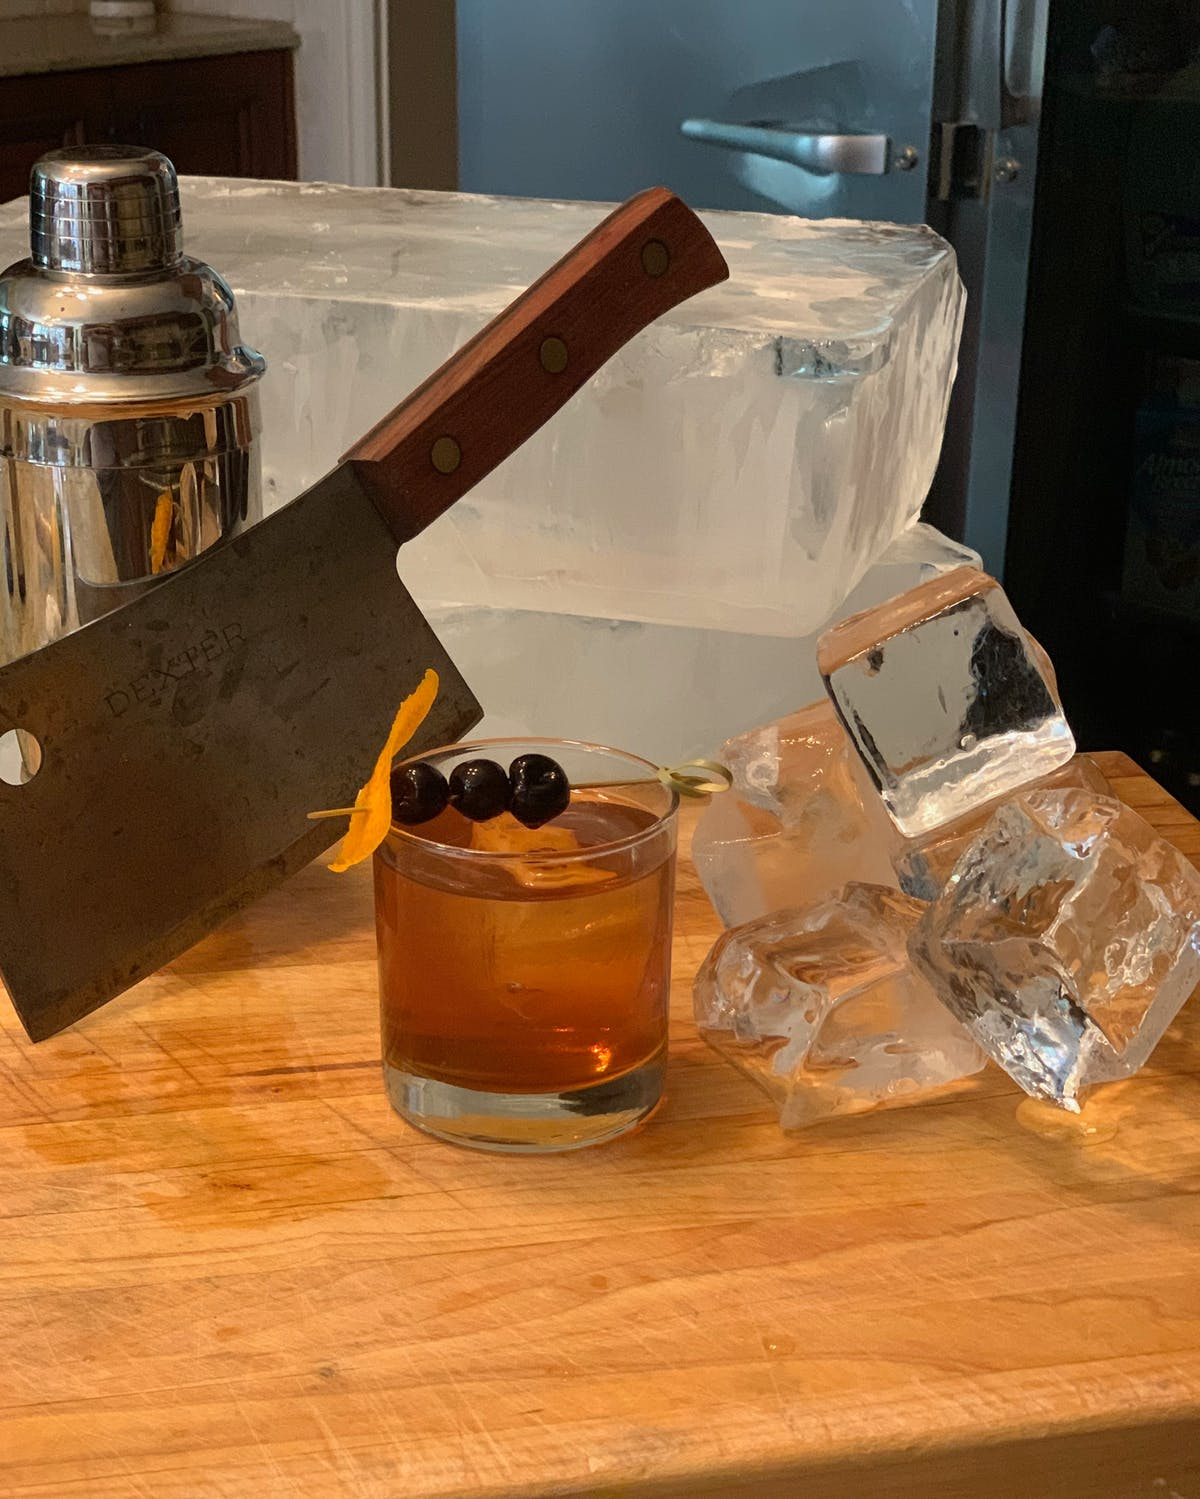 a butcher's knife with a drink